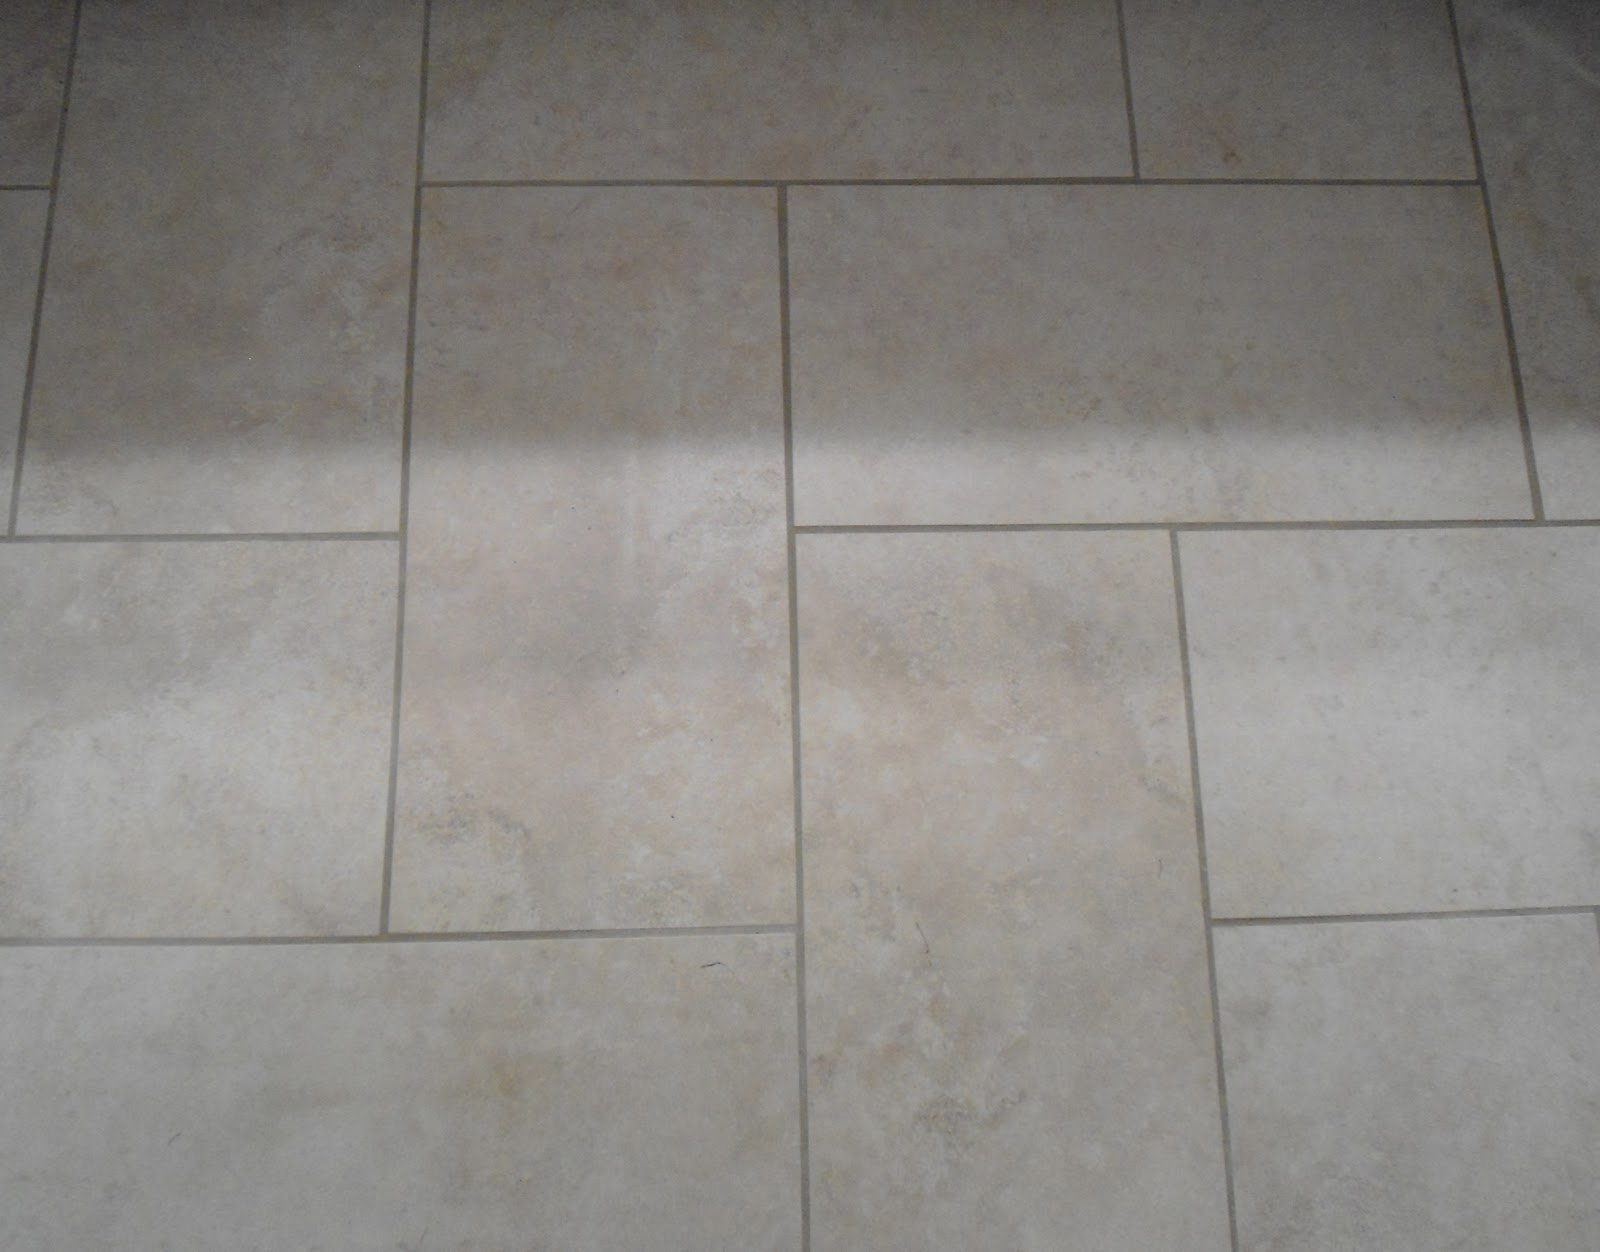 Floor tile patterns 12x24 7 floor tile patterns 12x24 for 12x24 tile patterns floor